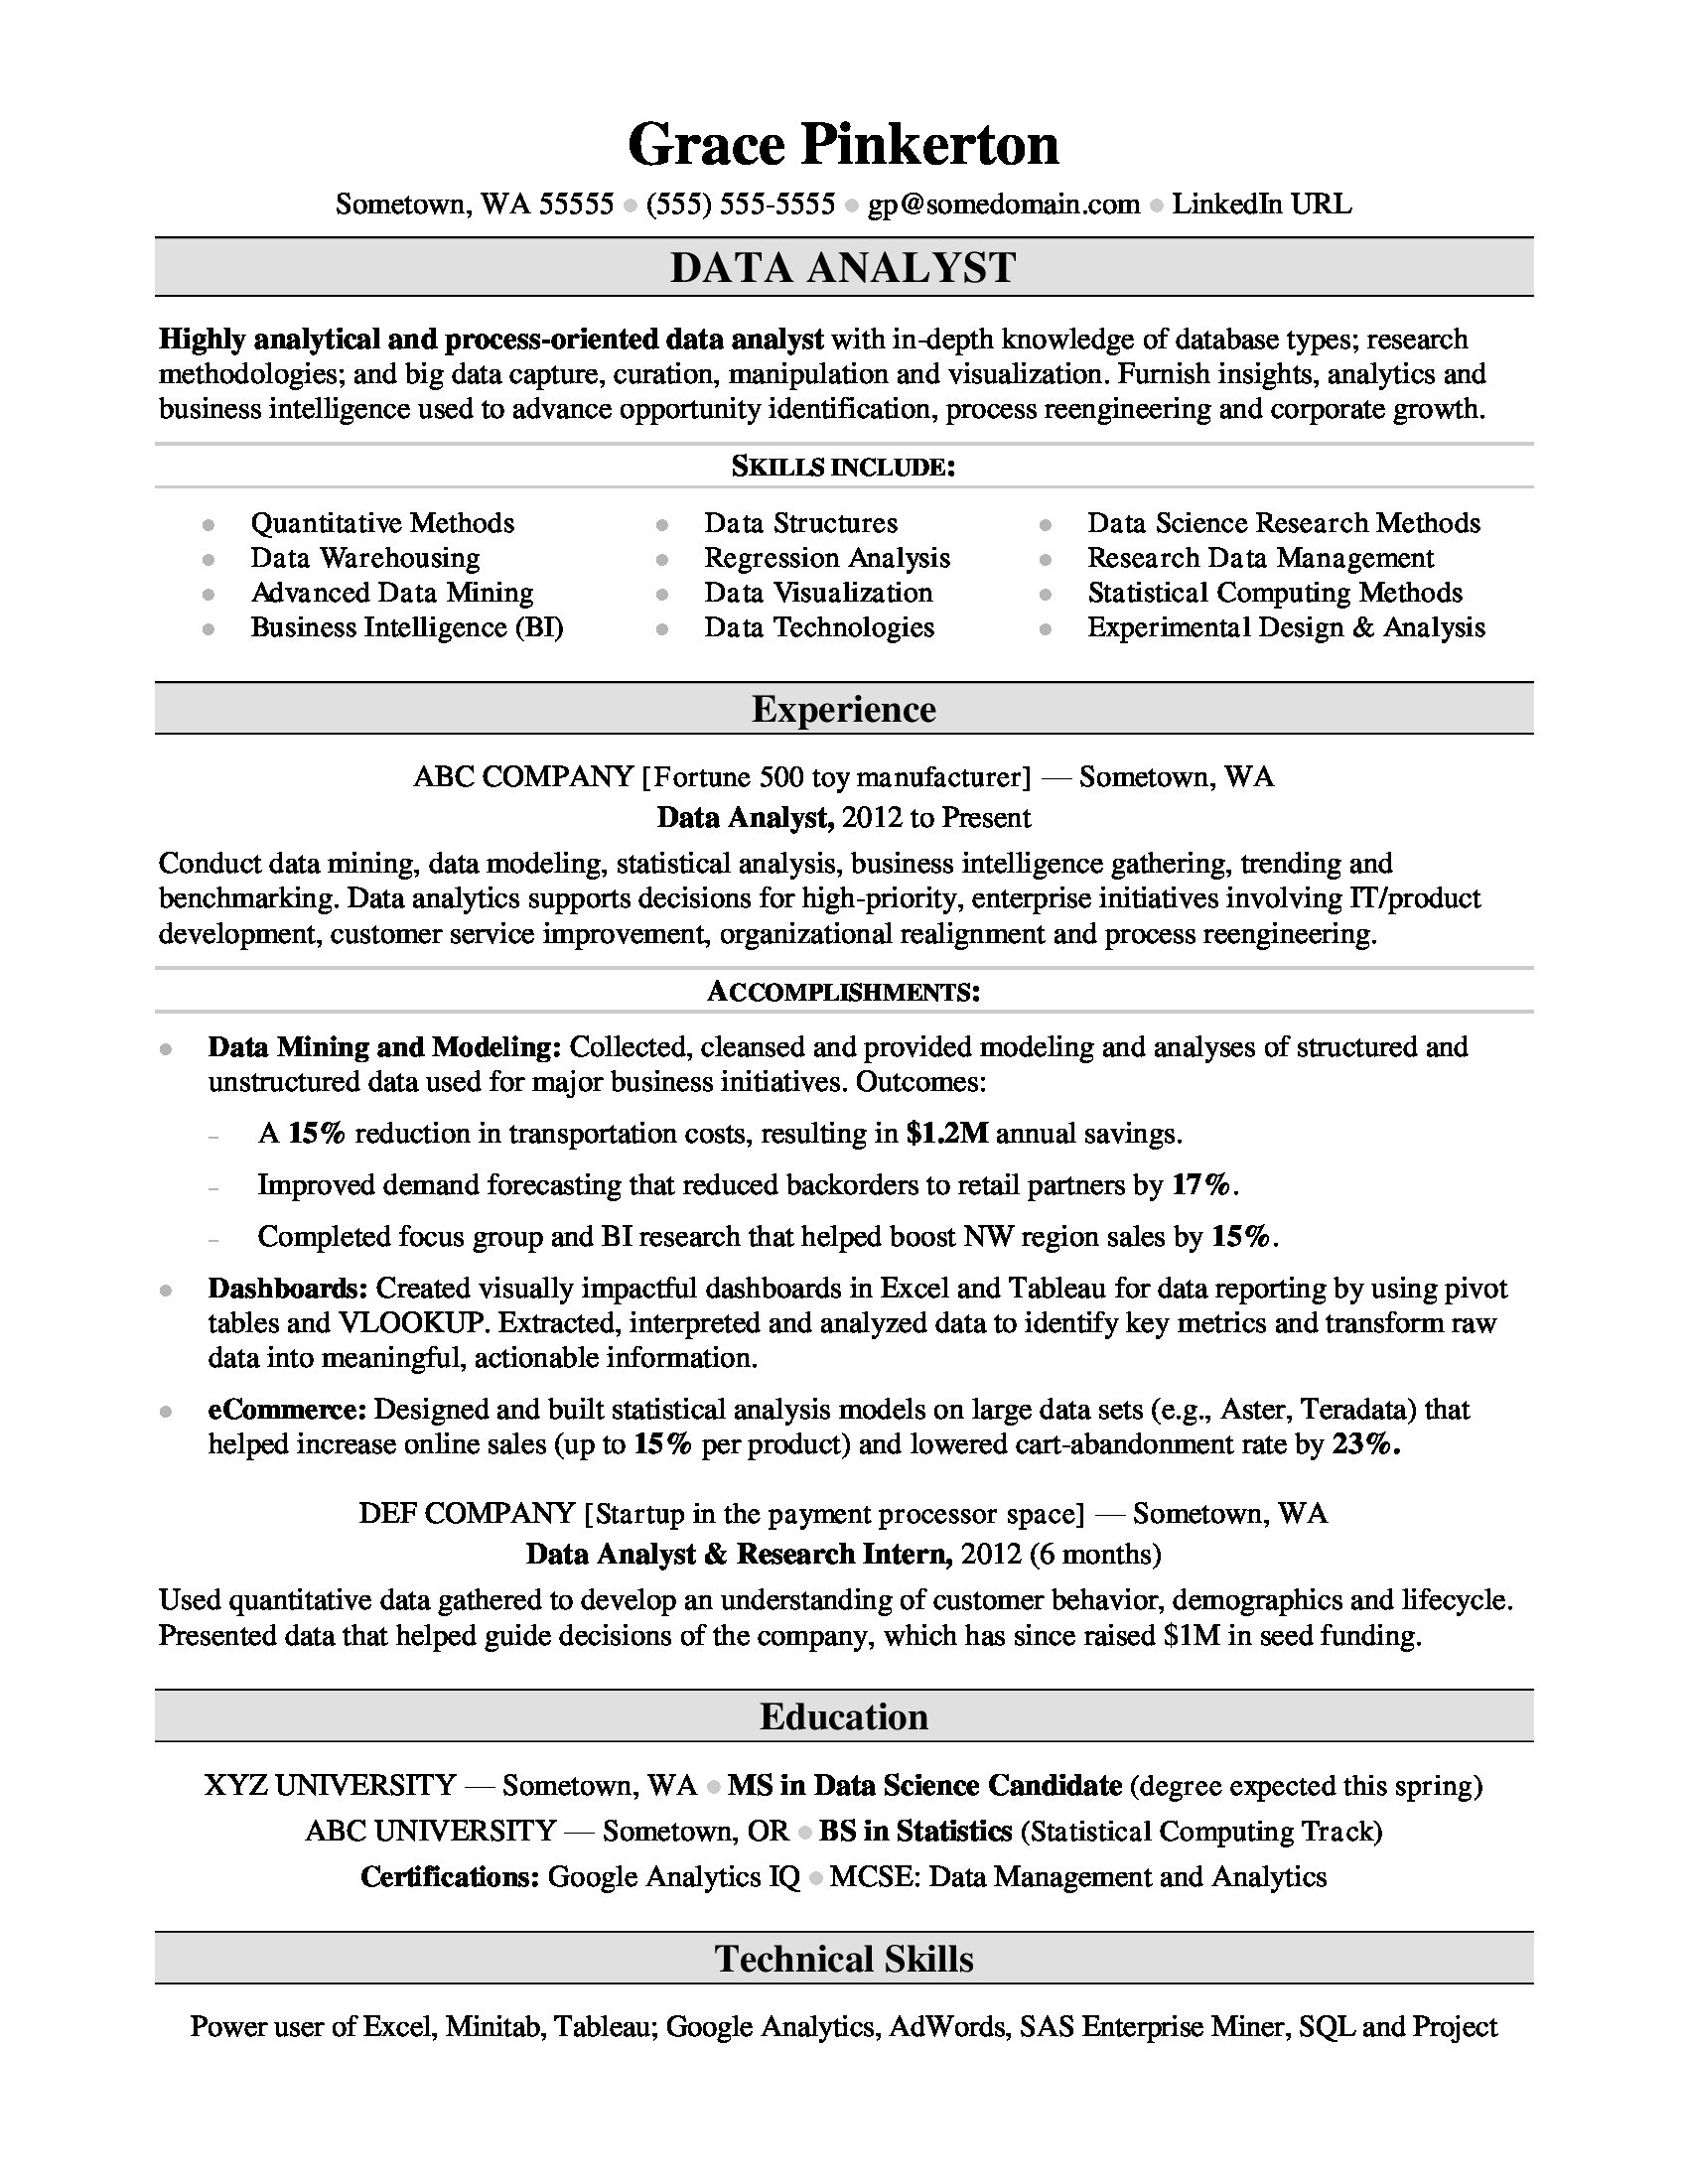 Data Analyst Resume Sample  Sample Business Resumes